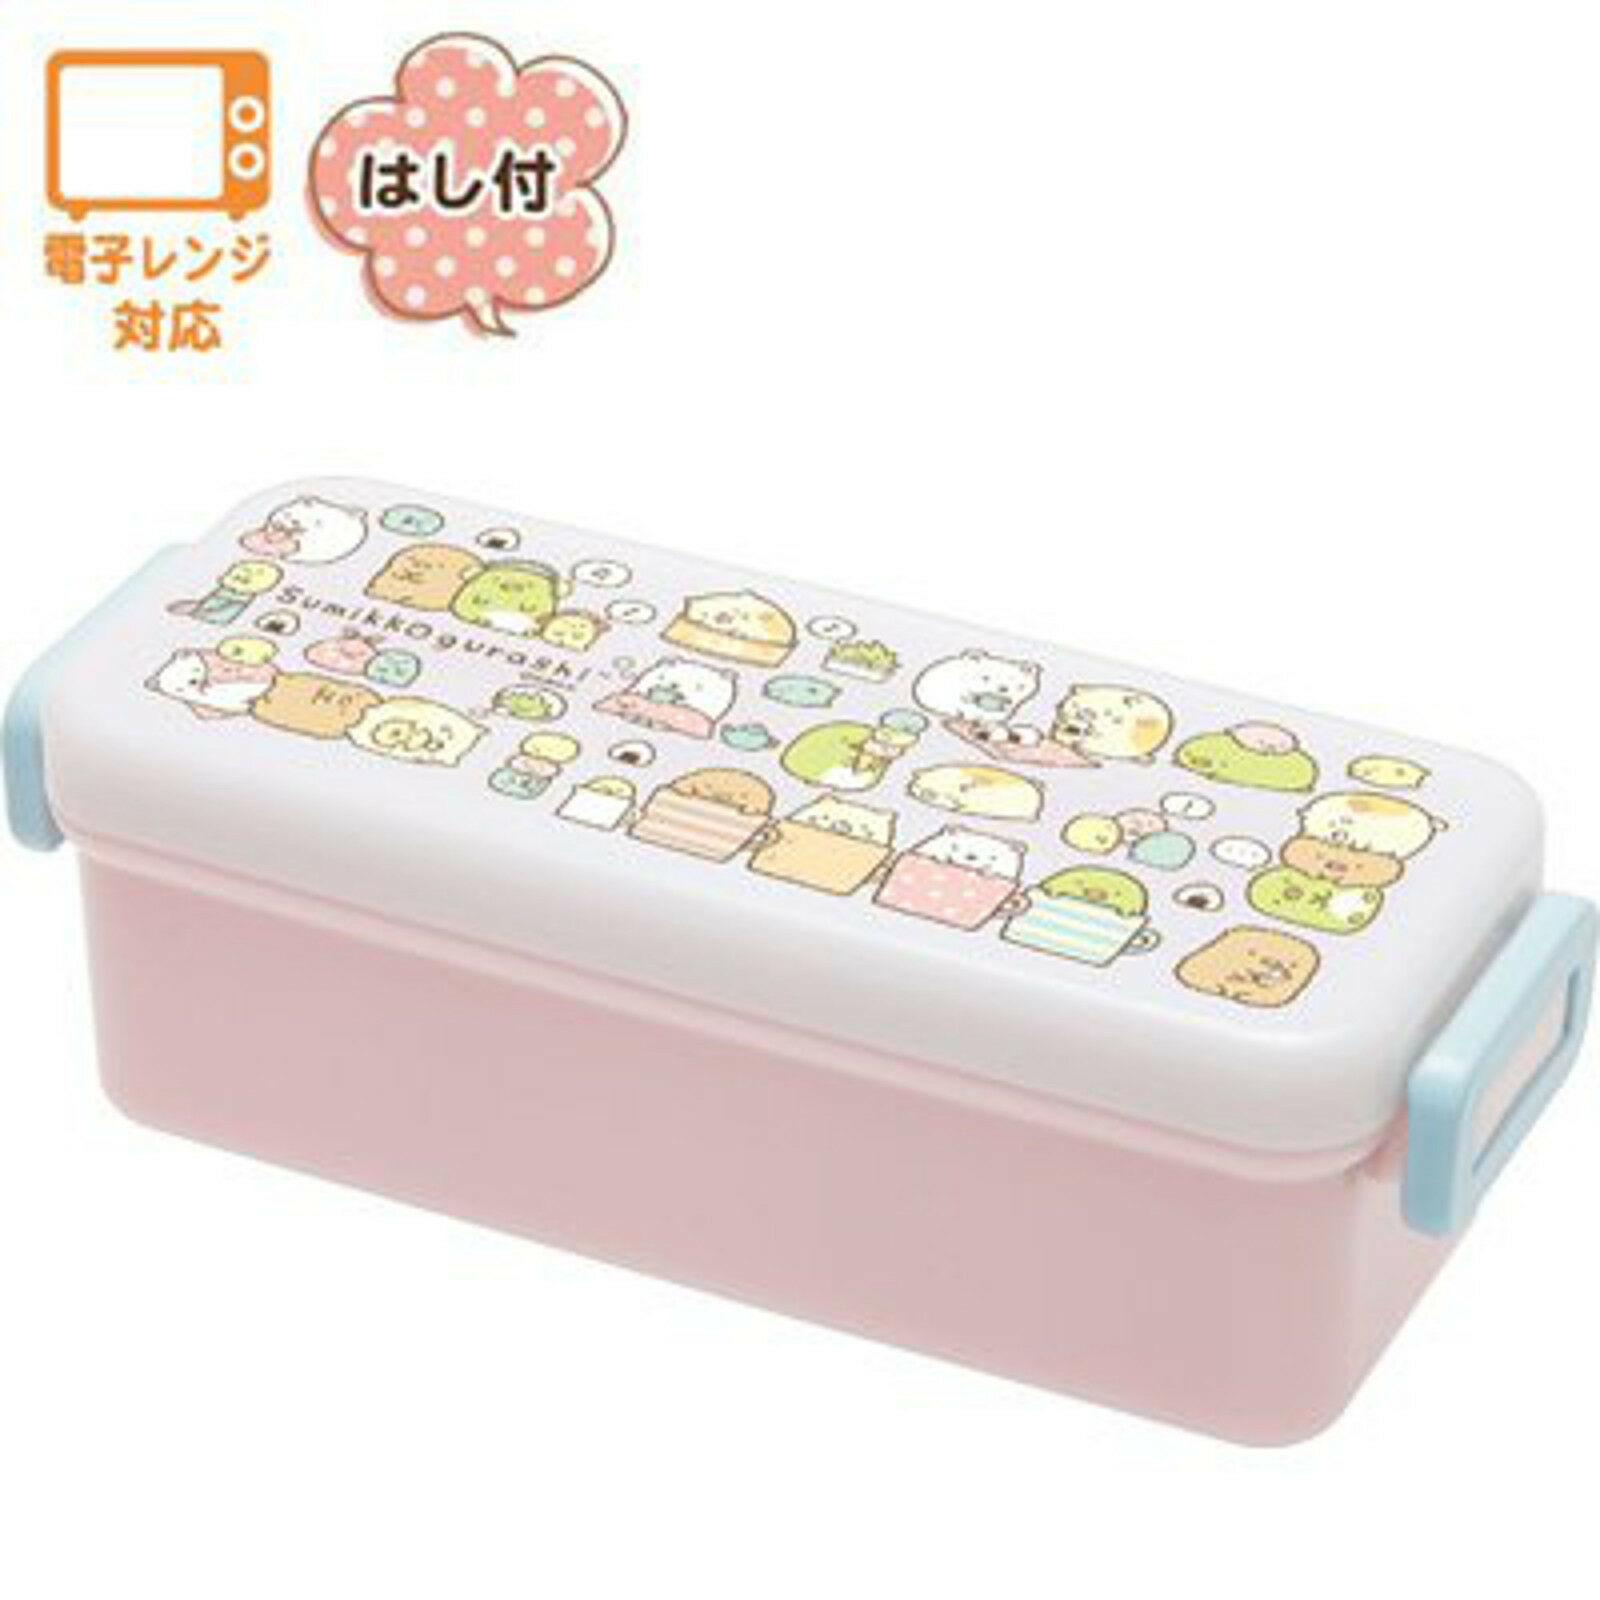 san x sumikko gurashi lunch food container bento box with chopsticks 540ml japan ebay. Black Bedroom Furniture Sets. Home Design Ideas